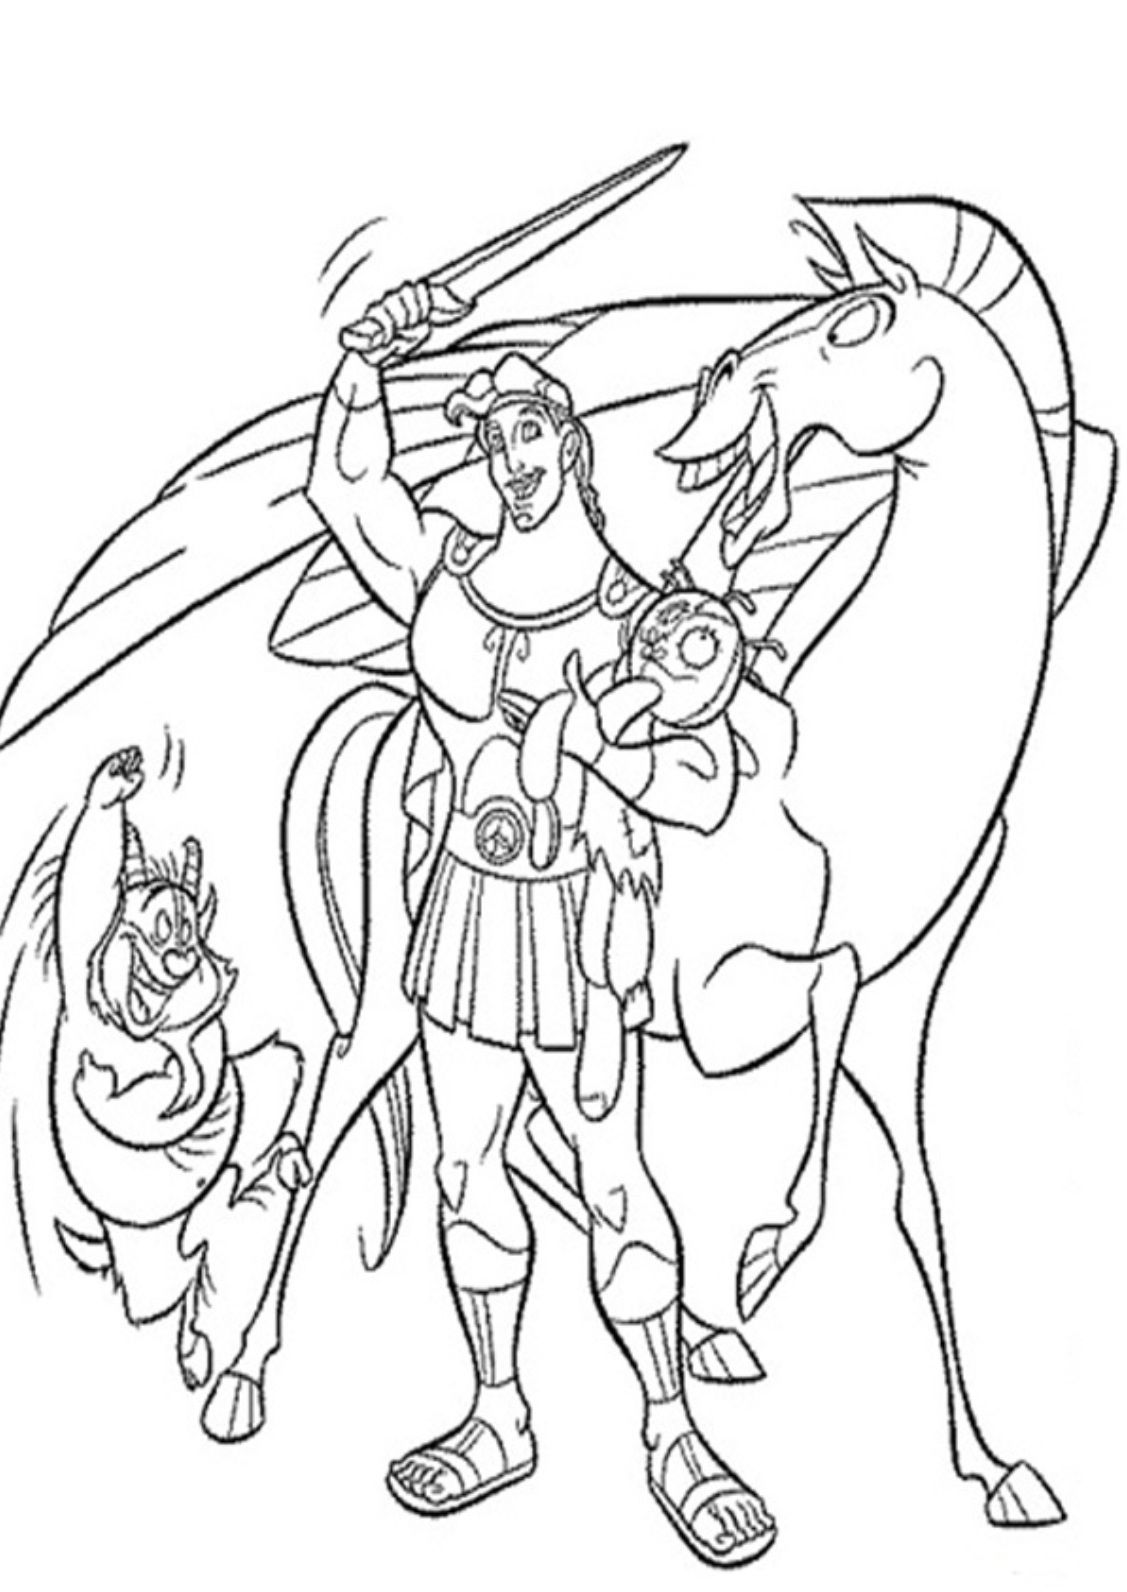 Hercules Win Coloring Pages For Kids D6i Printable Hercules Coloring Pages For Kids Monster Coloring Pages Cartoon Coloring Pages Disney Coloring Pages